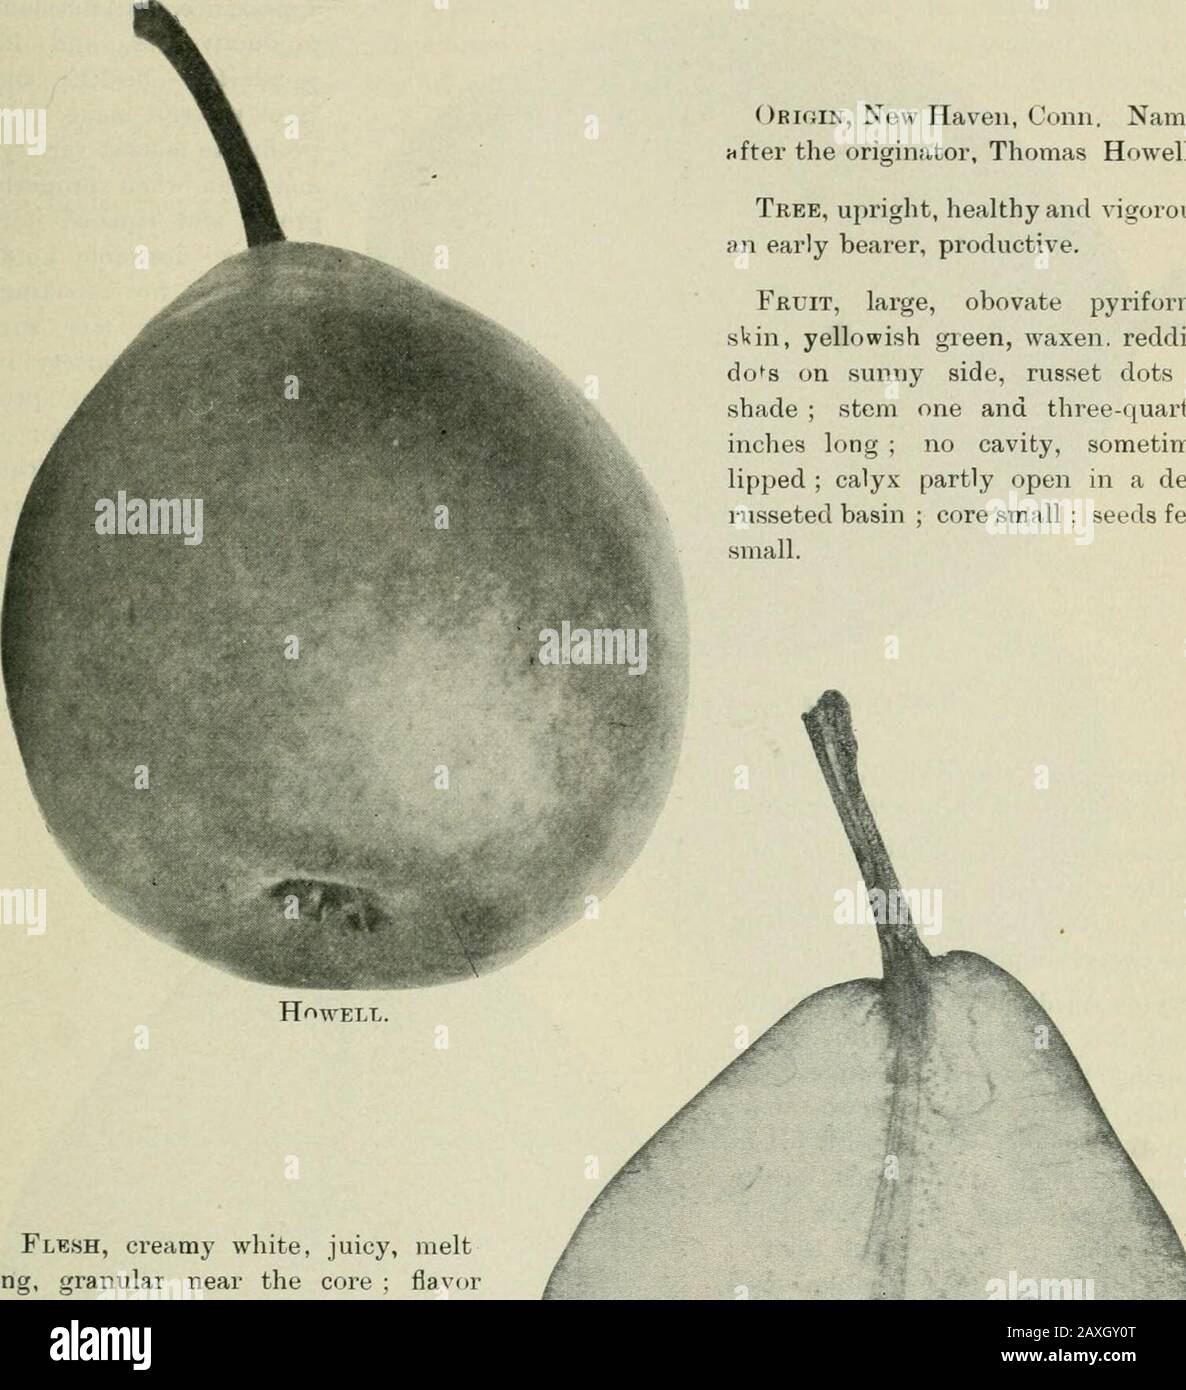 Ontario Sessional Papers, 1898-99, No.18-25 . ias been of late so subject toscab and cracking of the fruit,that it has lost favor withgrowers, notwithstanding itsexcellent quality. ORIGIN, discovered by Van-Mons about the year 1810 inEastern Flanders, and distribu-ted among his friends. Tree, first class in hardiness ;  J&k^ Section of Flemish Beauty. 64 62 Victoria. Sessional Papers (No. 21). A.1899 HOWELL. One of the best market pears of its season for southern Ontario, especially where grown ona standard. Its vigor of tree, regularity of bearing, clear skin, and good size and quality makei Stock Photo